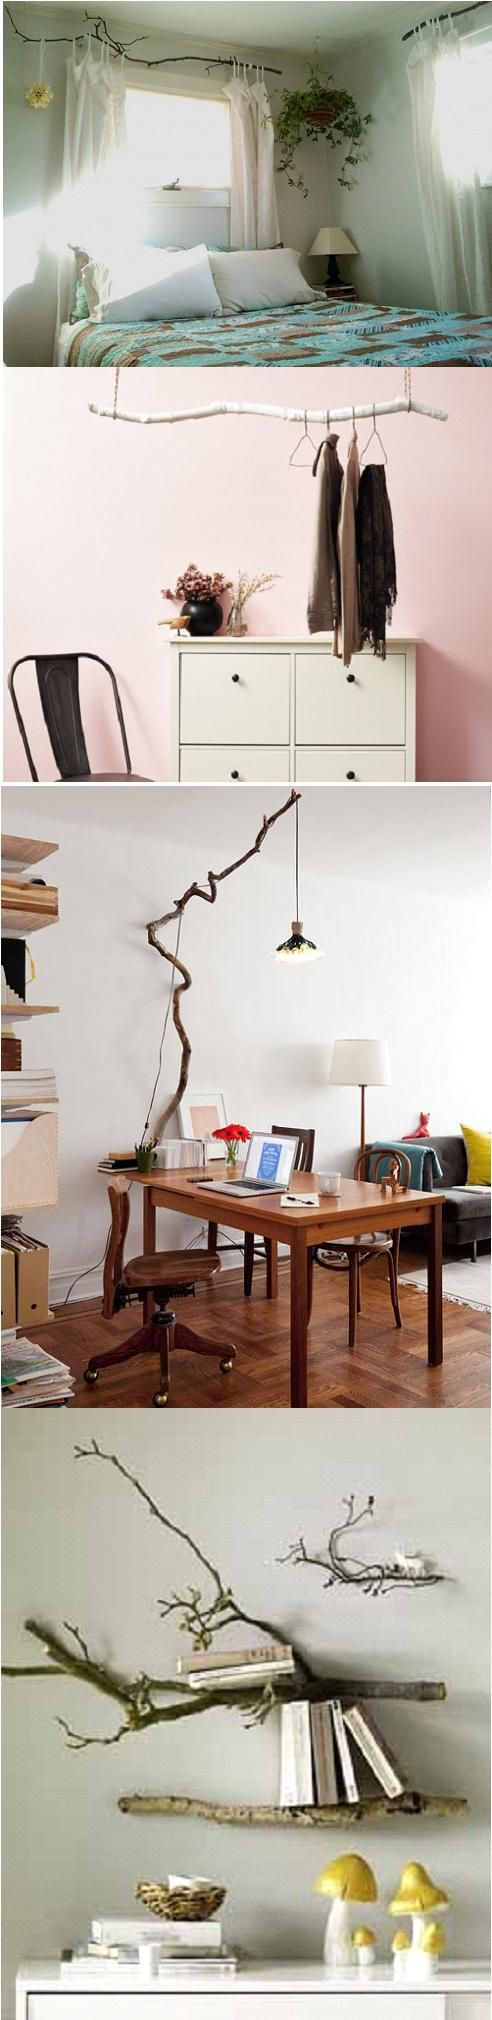 Decorating with tree branches #diy